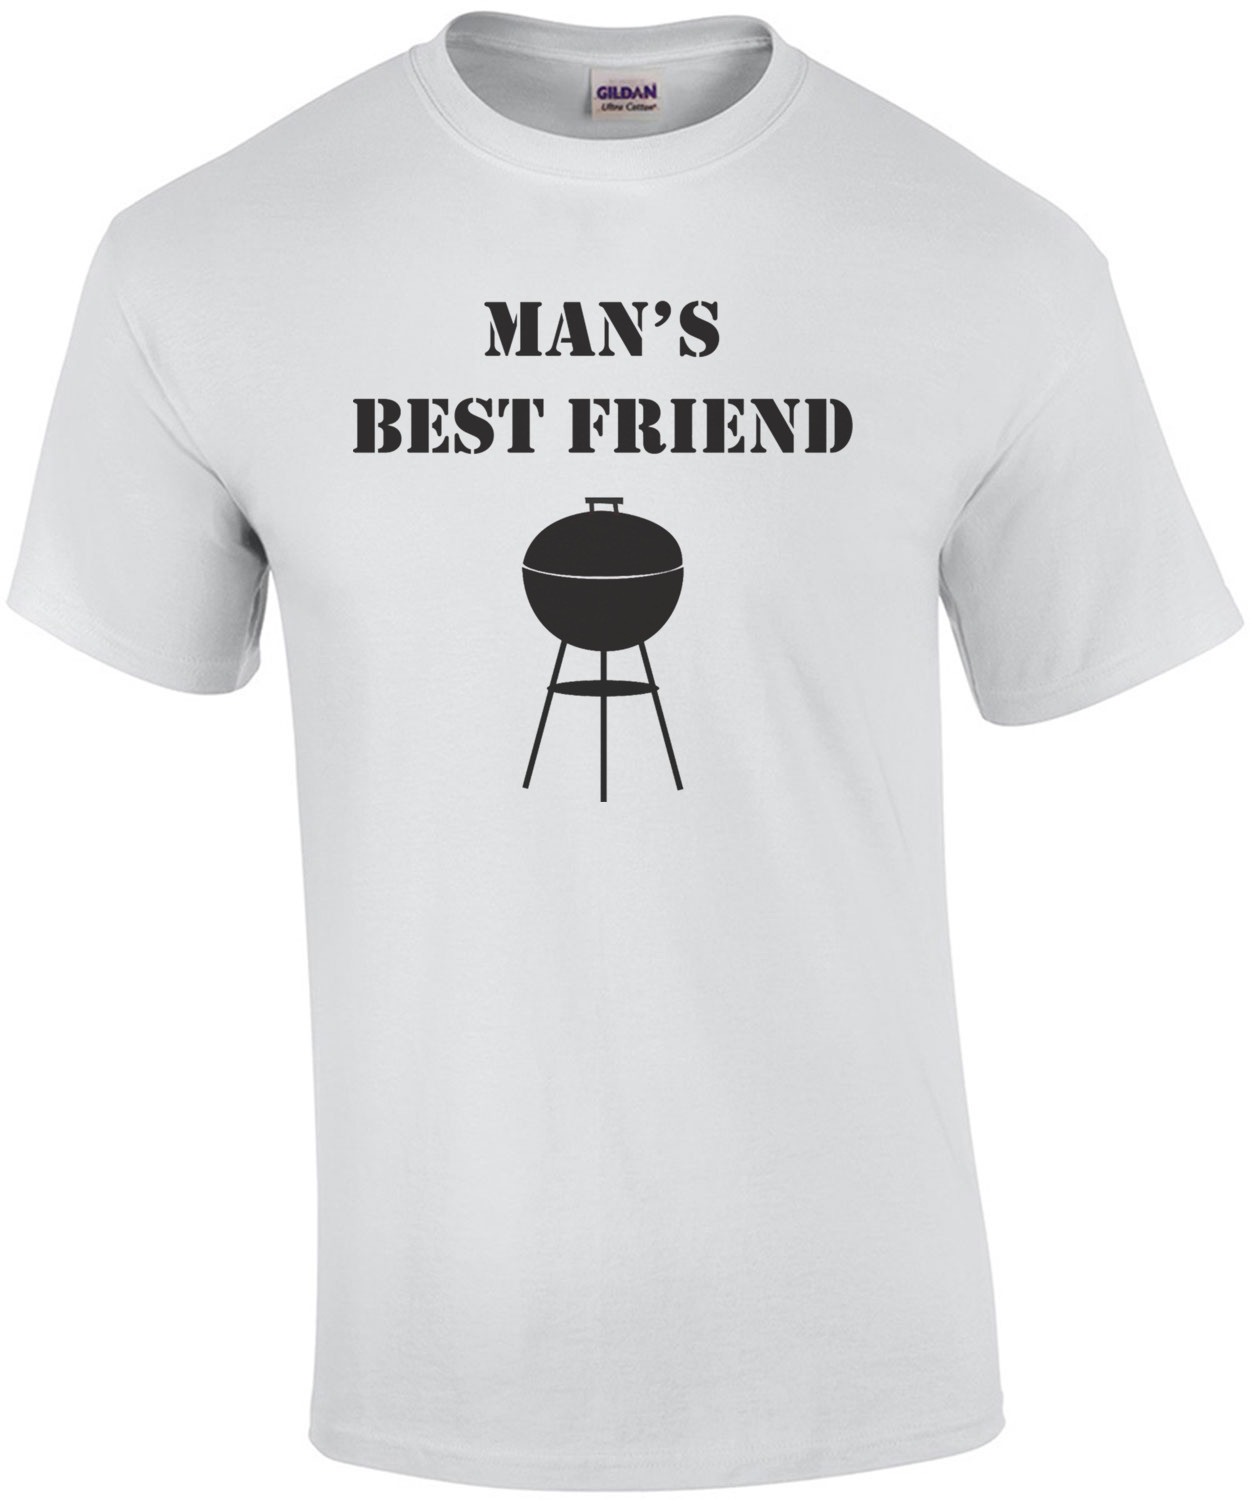 Man's Best Friend - Grill Shirt